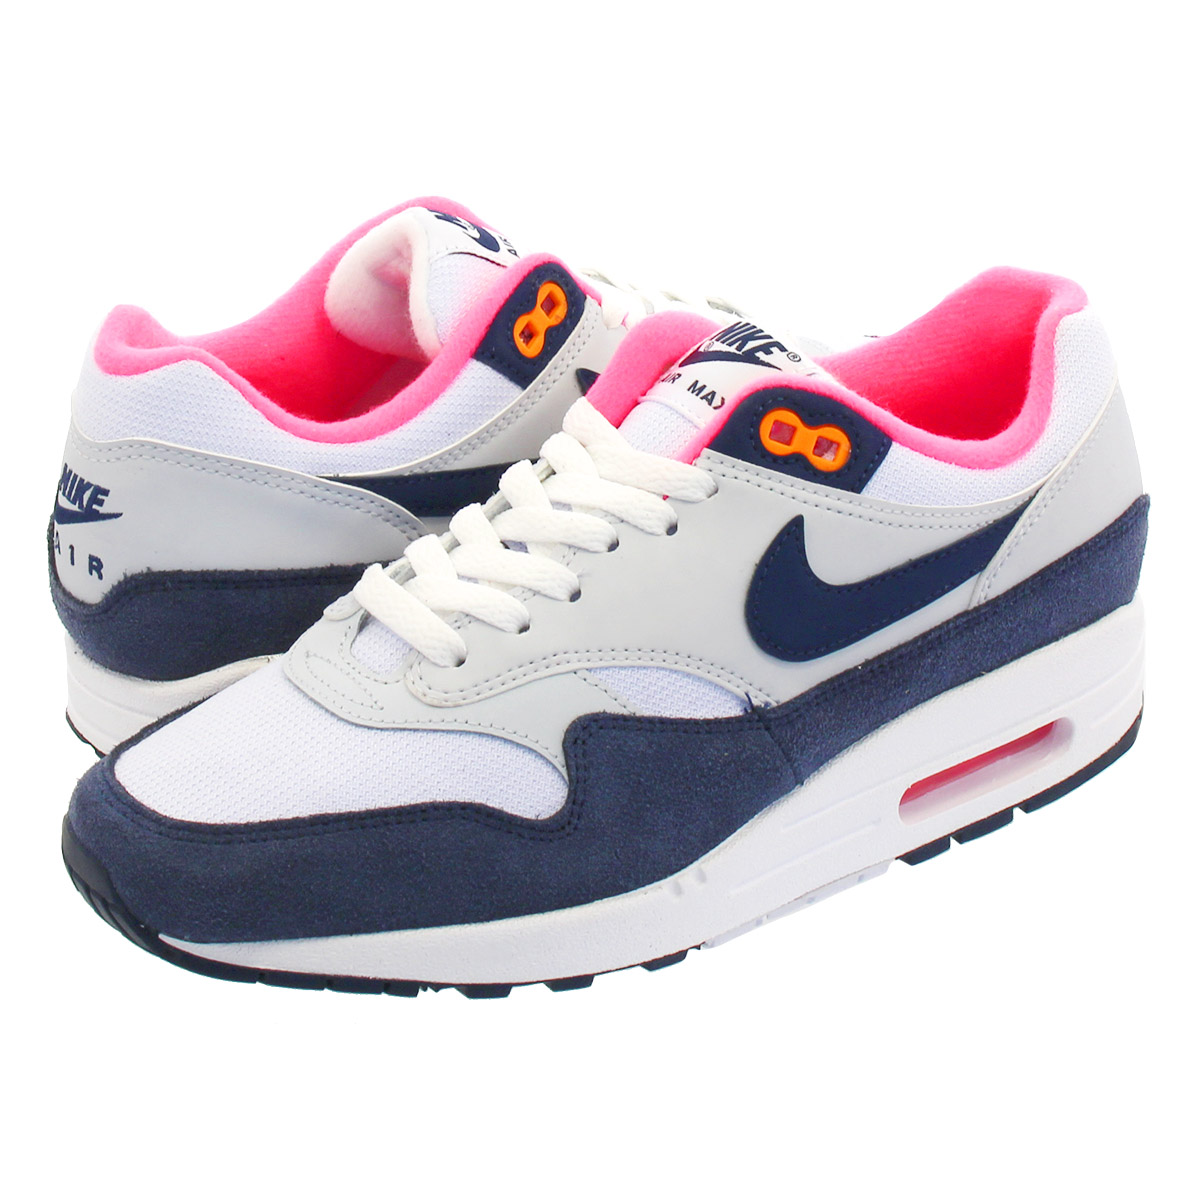 NIKE WMNS AIR MAX 1 Nike women Air Max 1 WHITEMIDNIGHT NAVYPURE PLATINUM 319,986 116